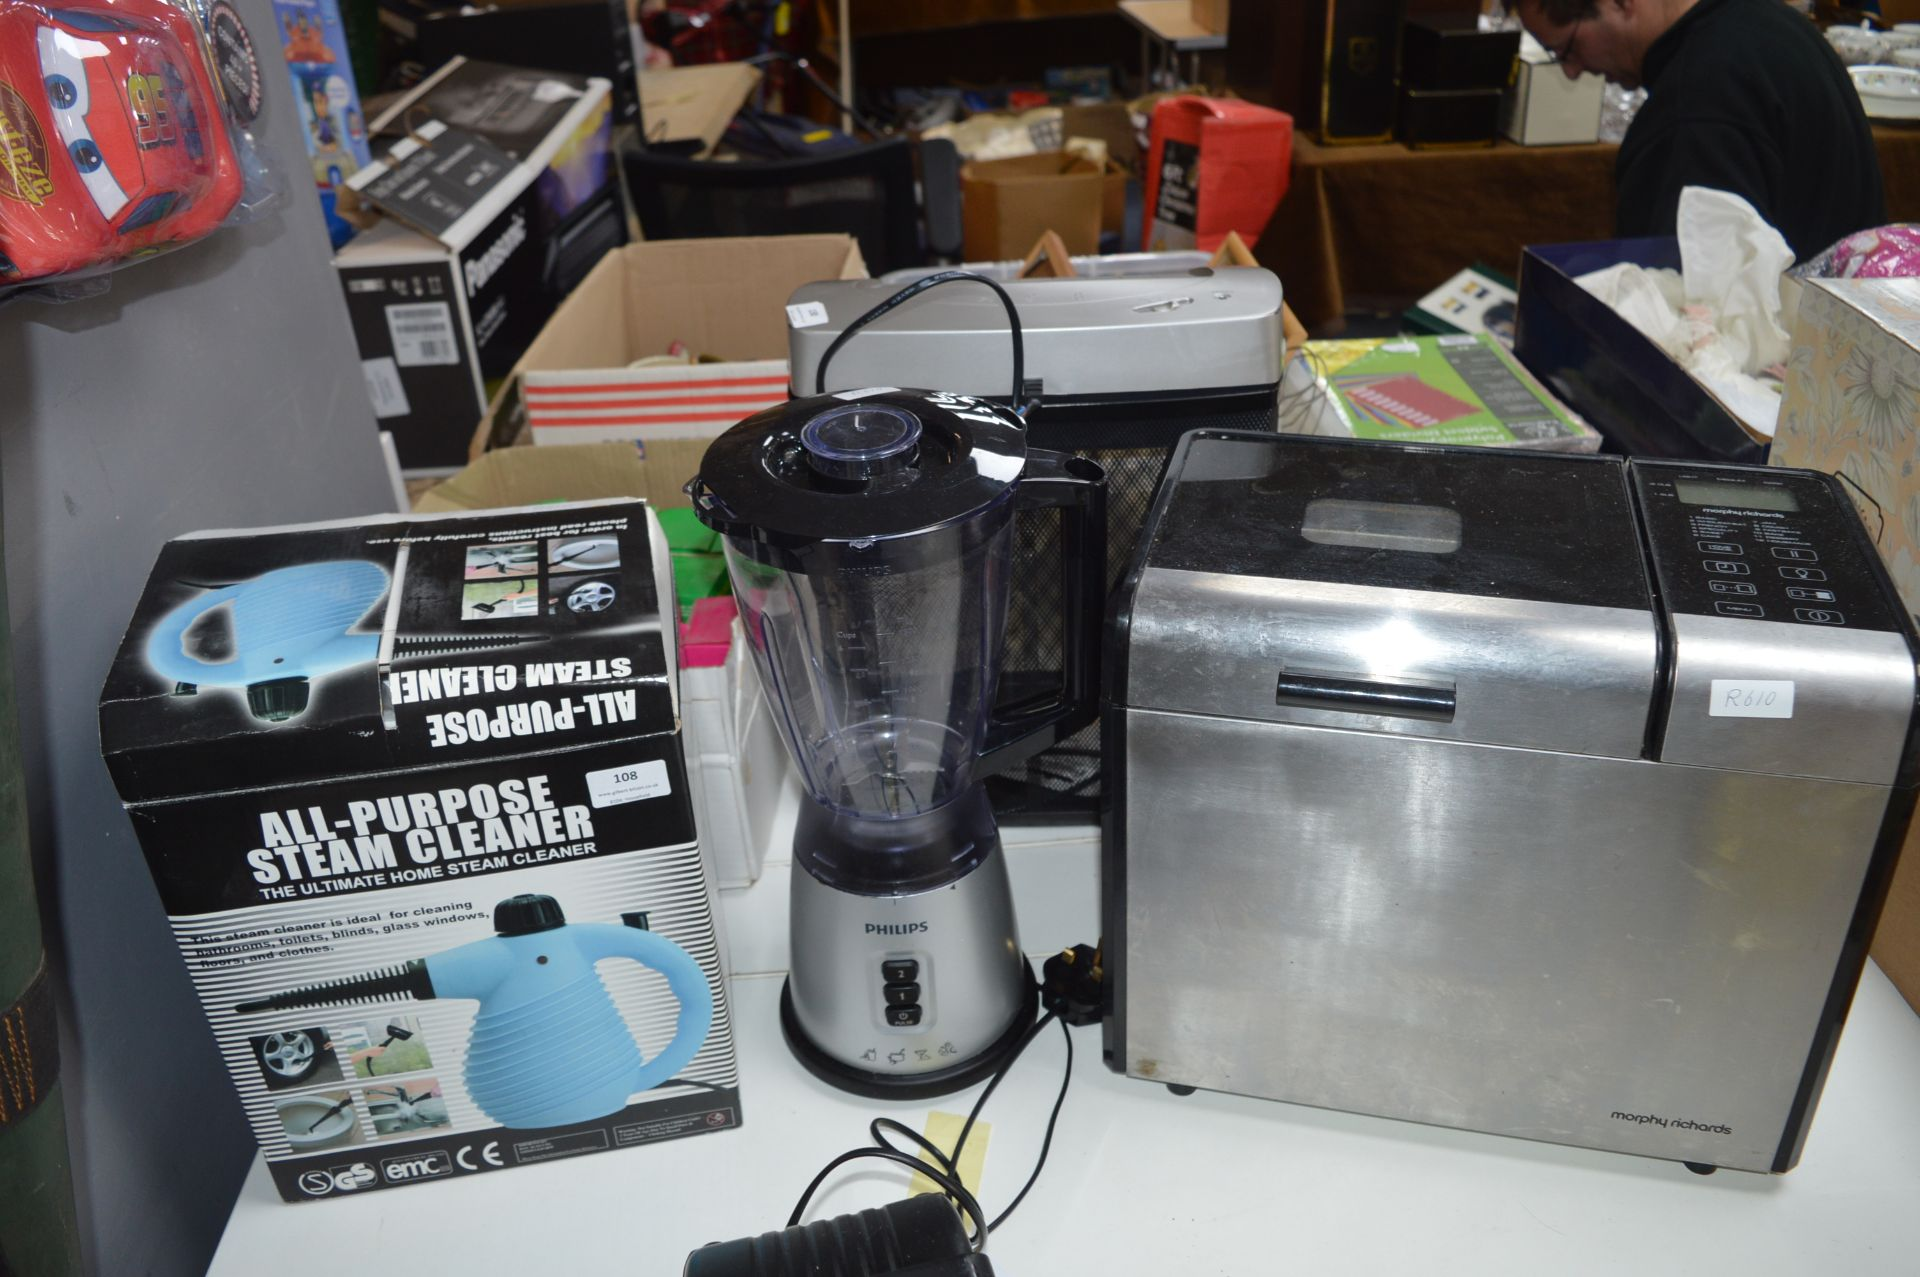 Lot 108 - All Purpose Steam Cleaner, Philips Liquidiser and